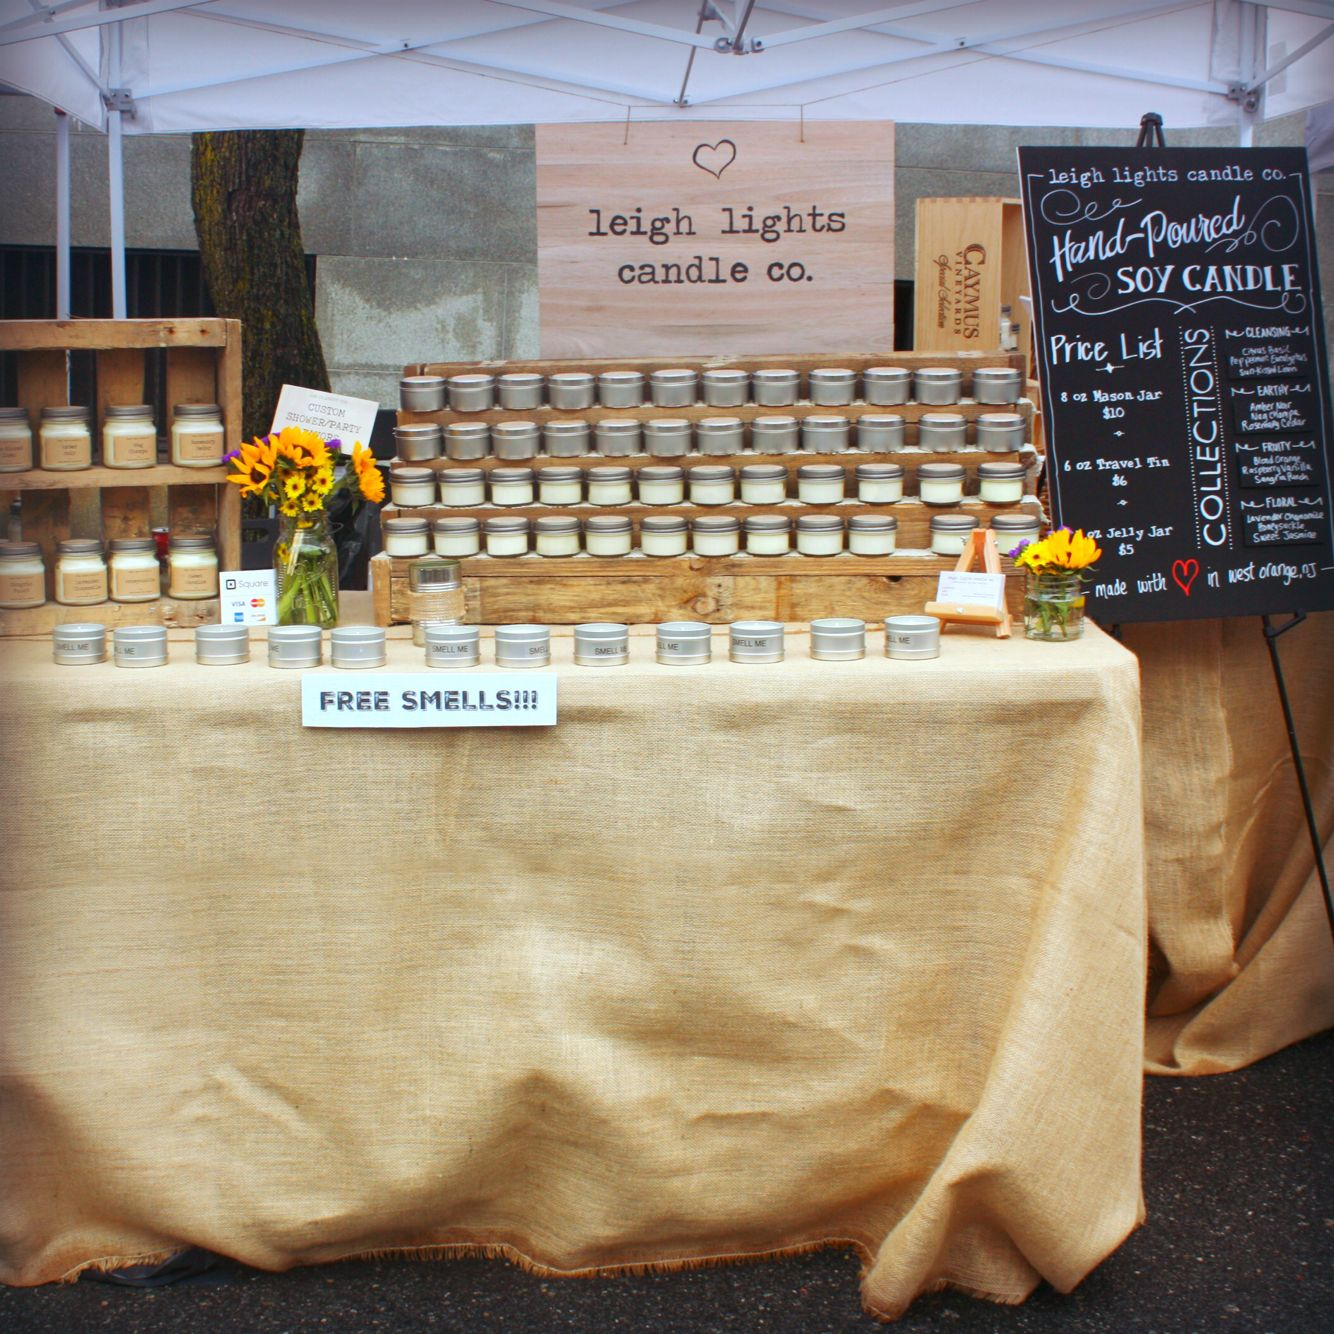 Soy Candles Craft Show Booth Display Ideas Candle Booth Display Craft Market Display Craft Booth Displays